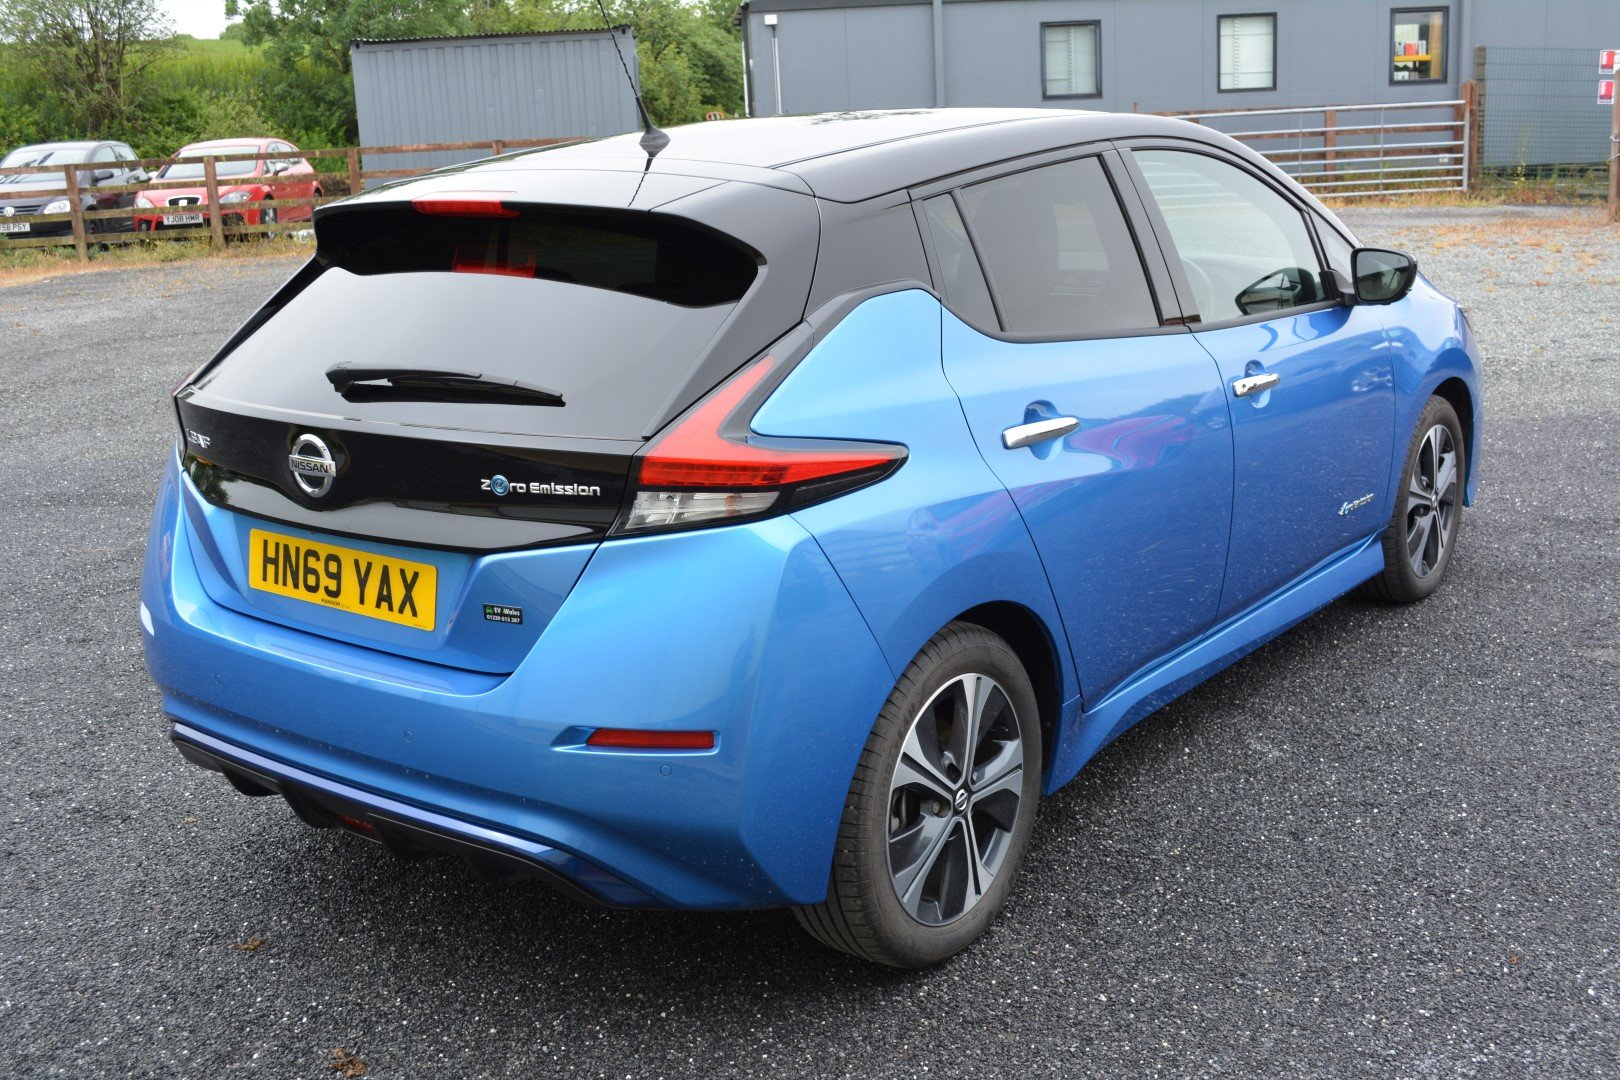 2019 Nearly New Nissan Leaf 40kwh - Full Leather - 140 mile range For Sale (picture 2 of 6)